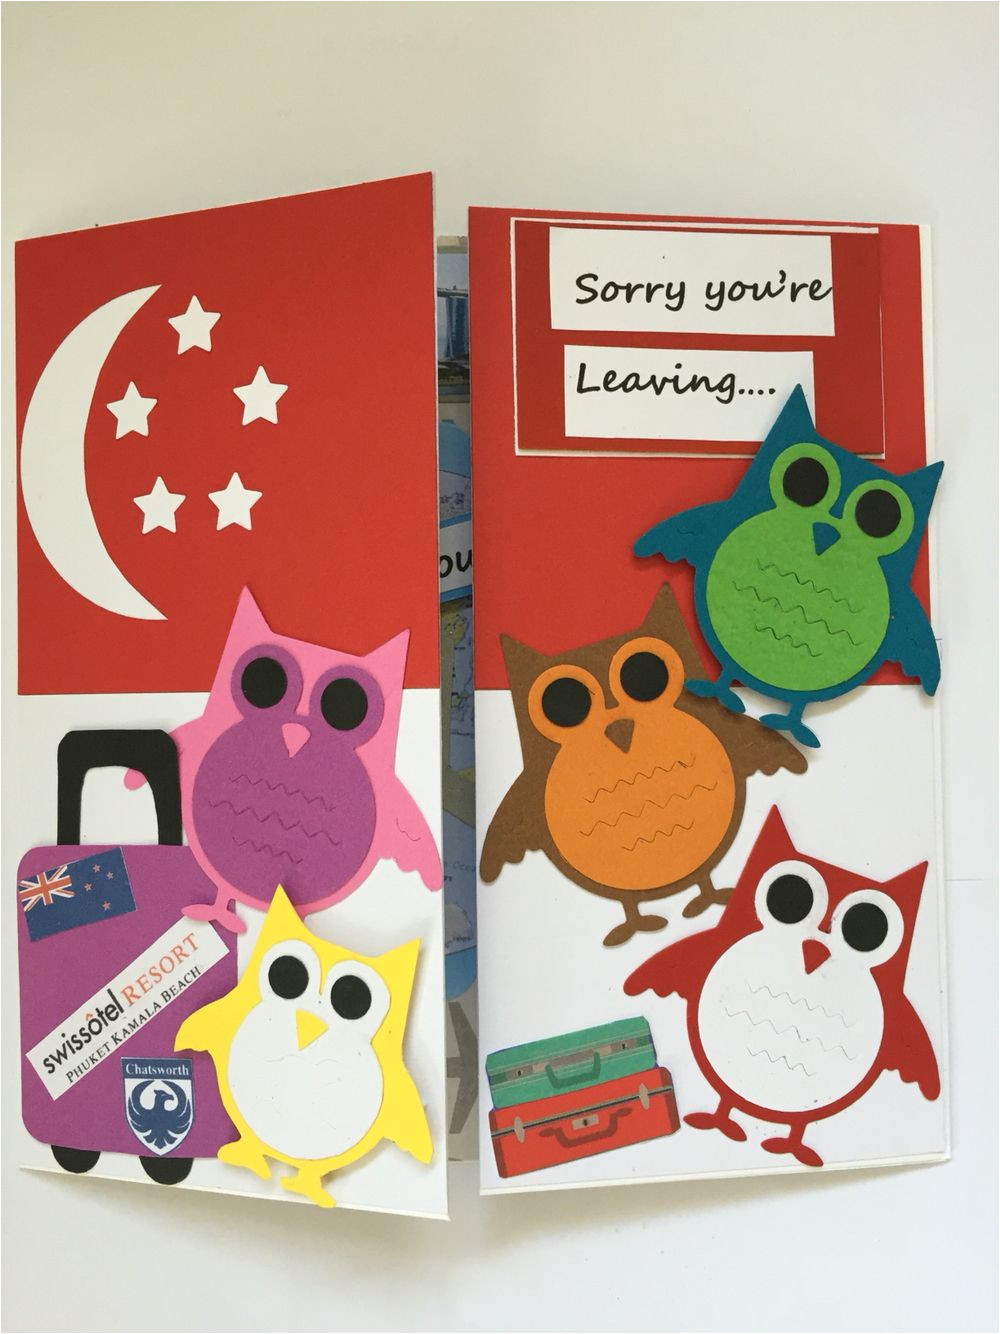 Farewell Party Ke Liye Greeting Card Farewell Card with Images Goodbye Cards Farewell Cards